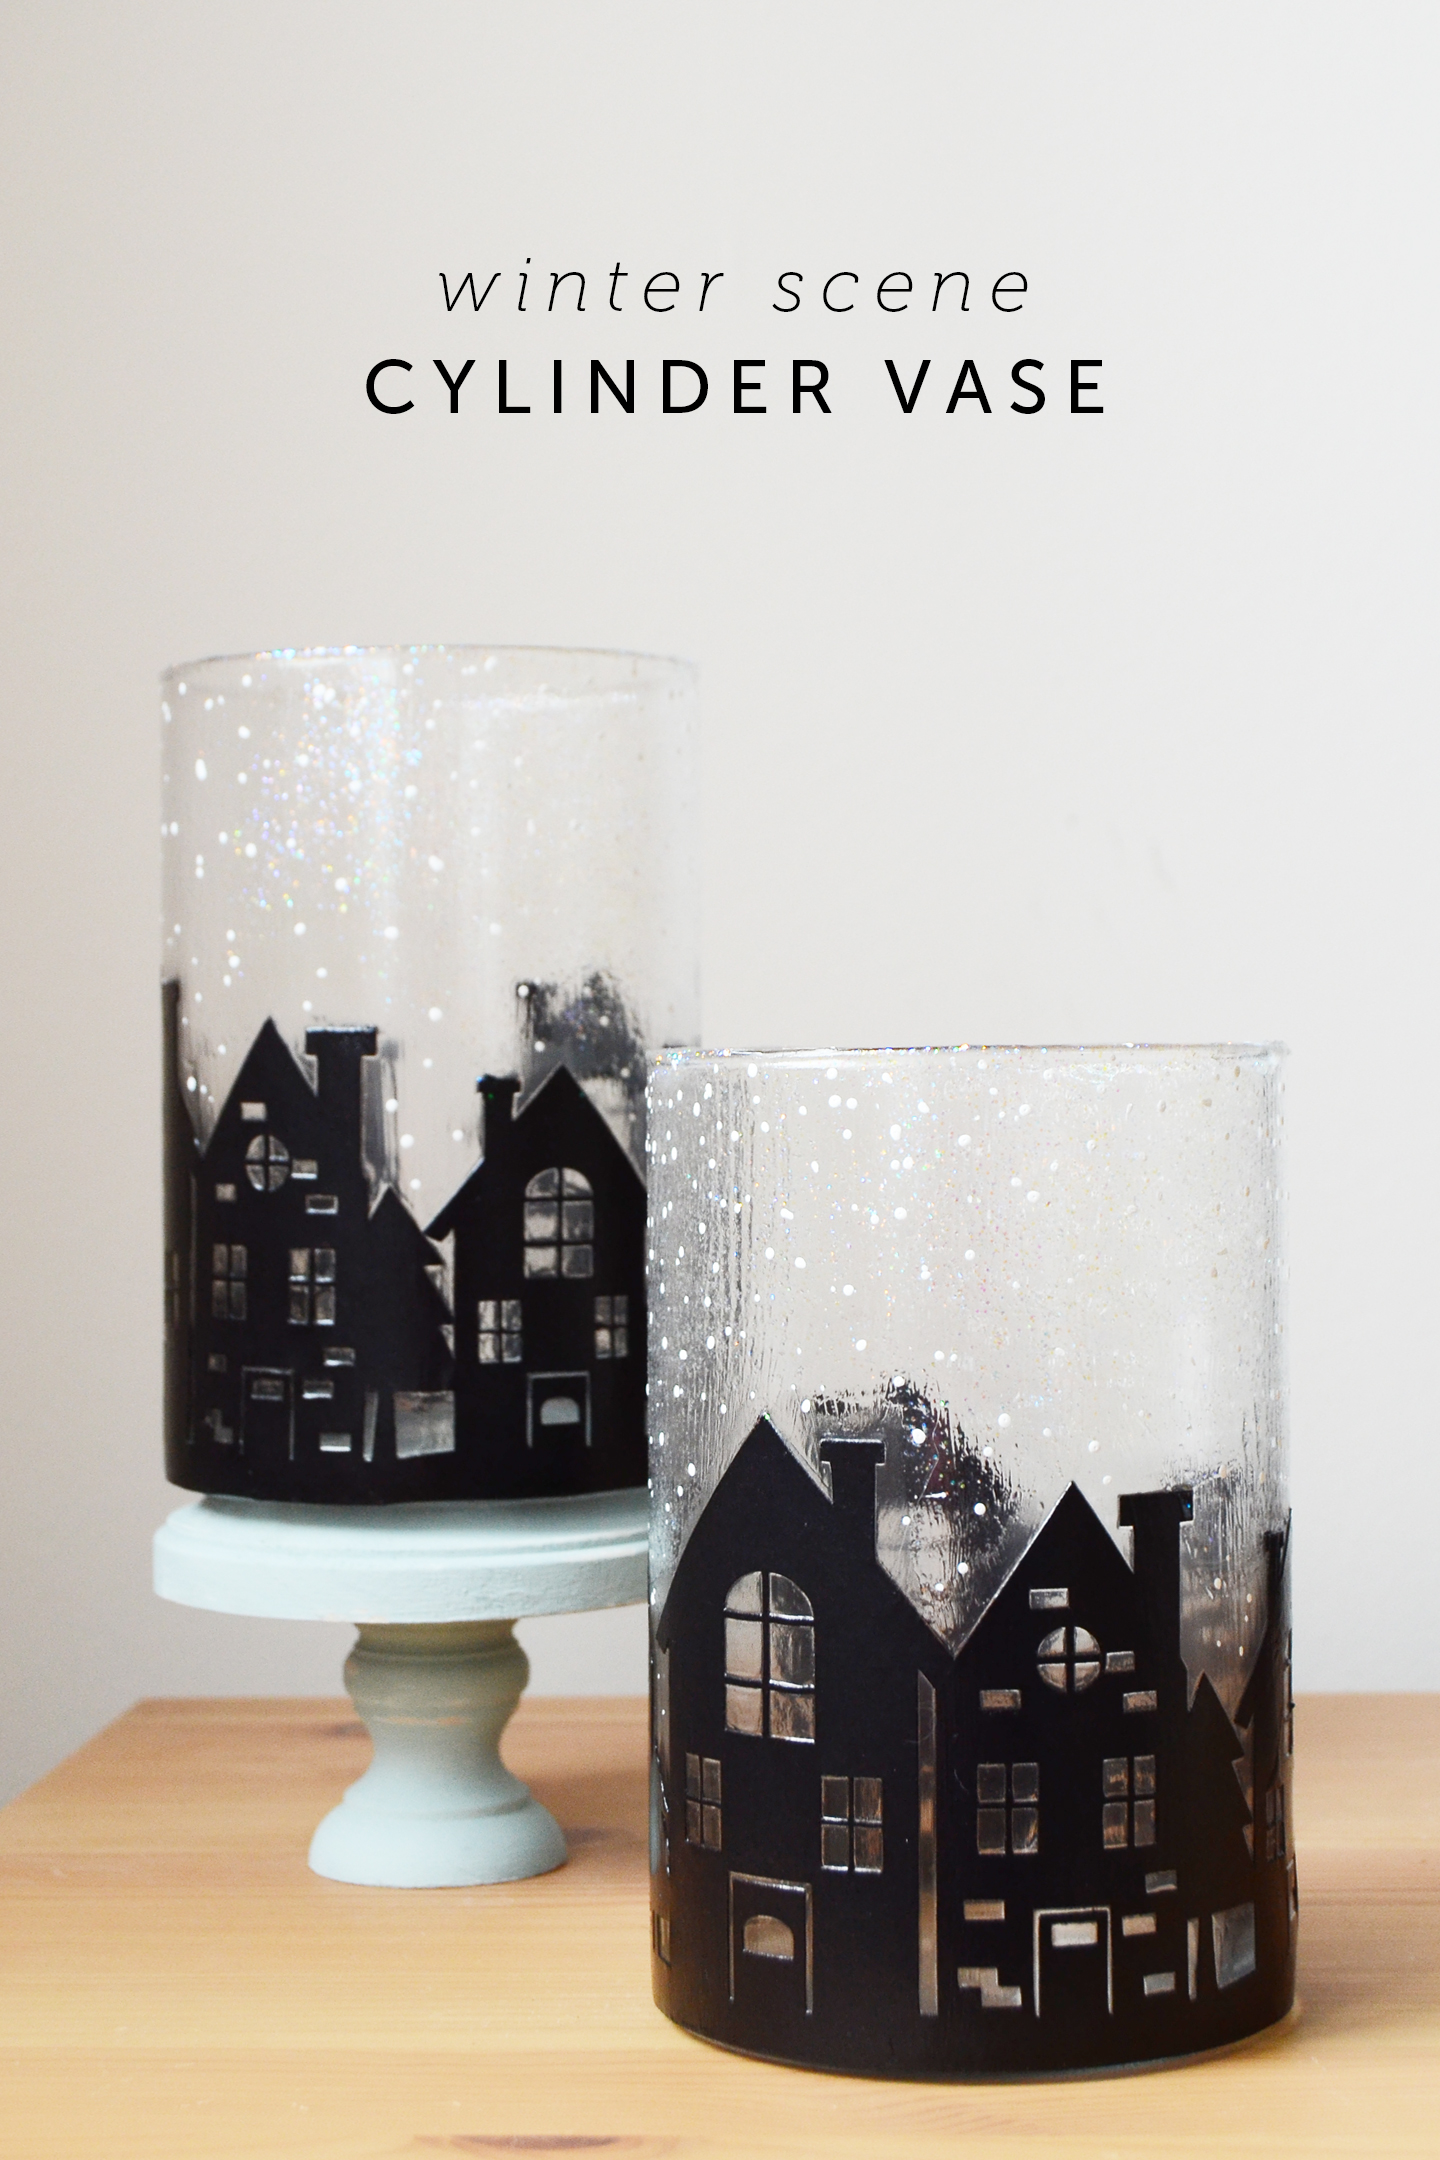 Create this unique vase decor with a silhouette winter scene! Perfect for a holiday mantel or for gifting along with some baked goods. Easy to make!